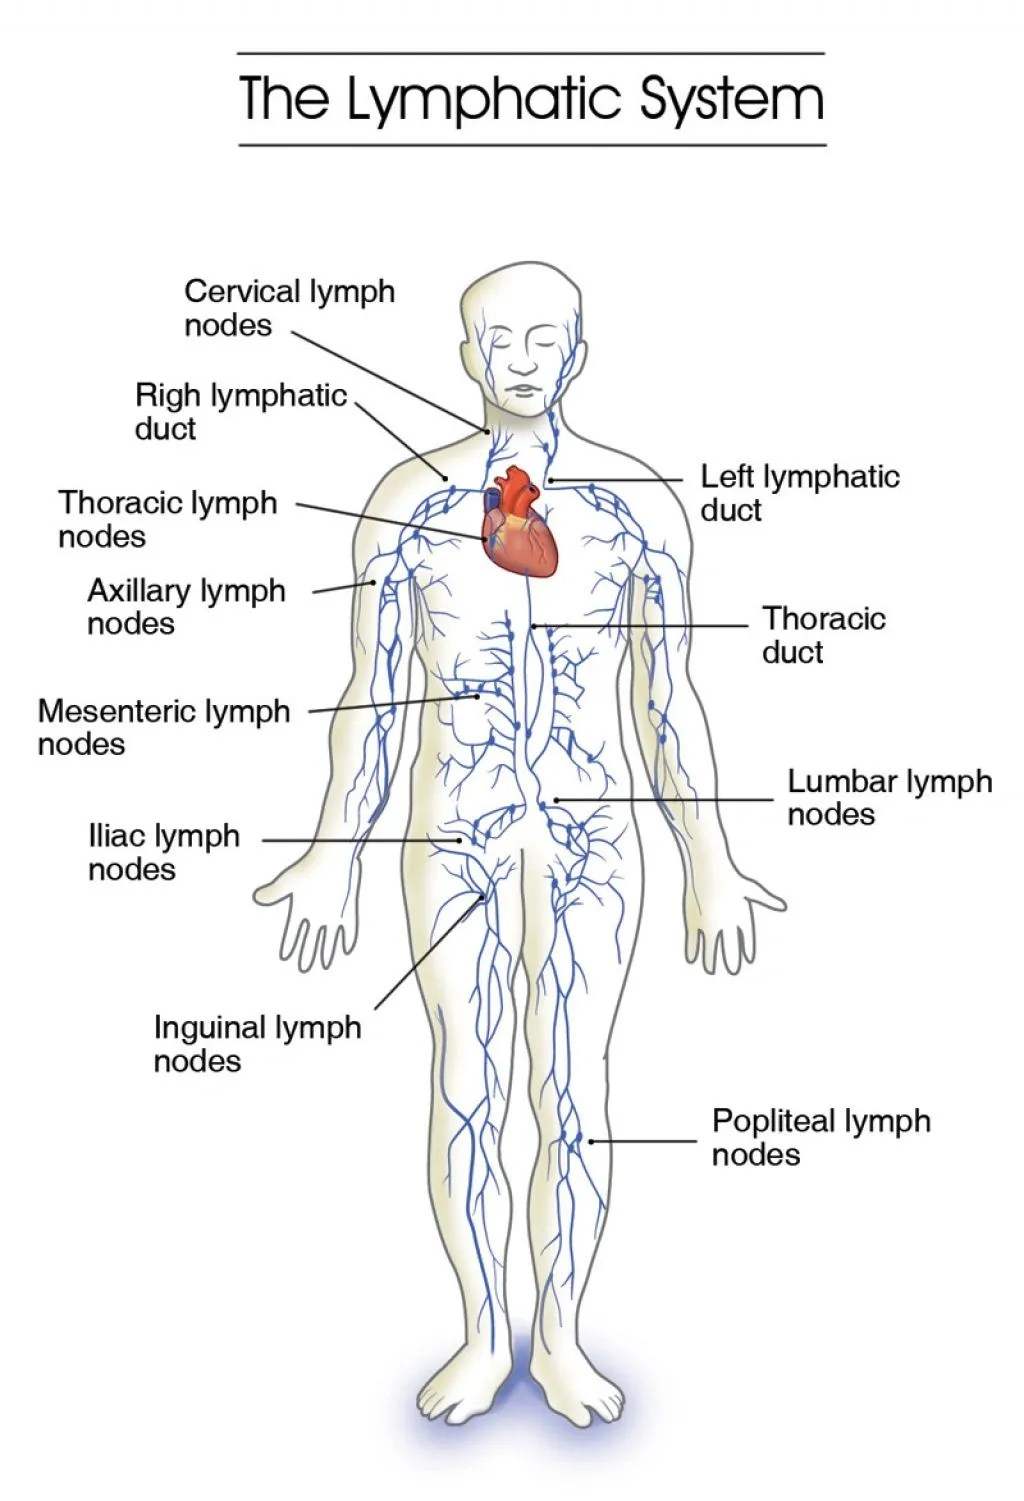 West Valley Lymphatic Care